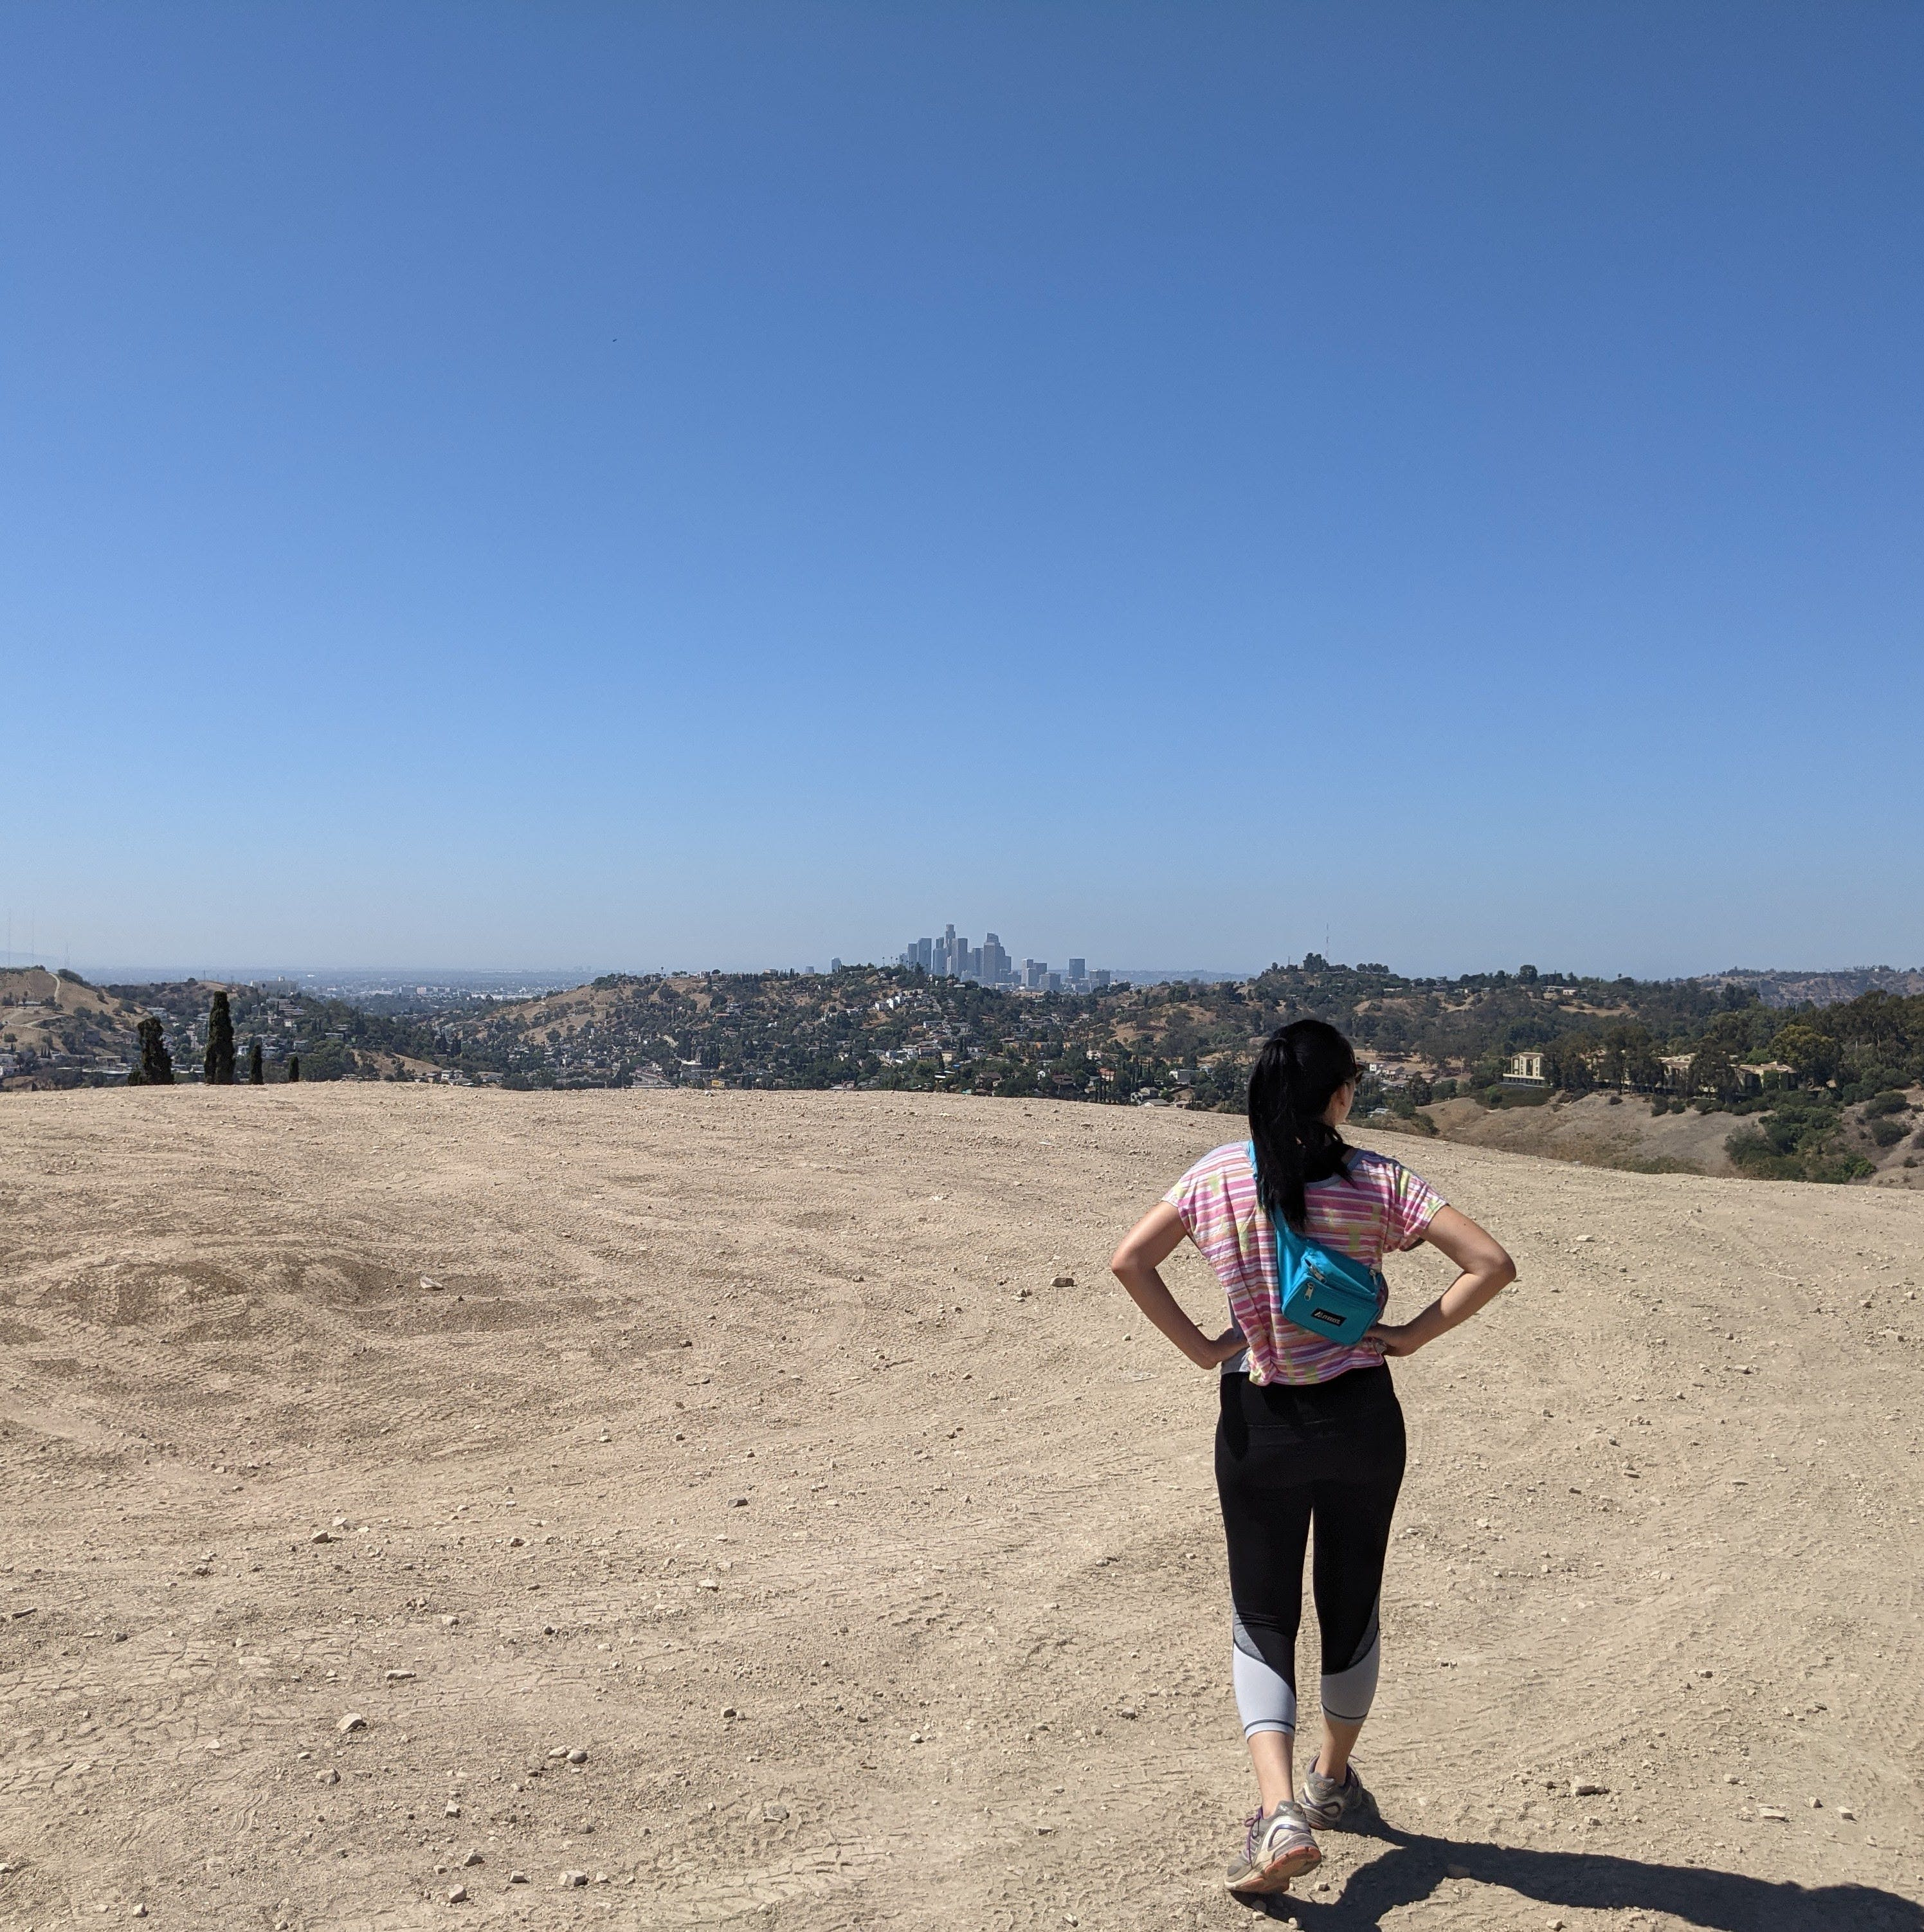 Hiker on a plateau at Elephant Hill Open Space in Los Angeles